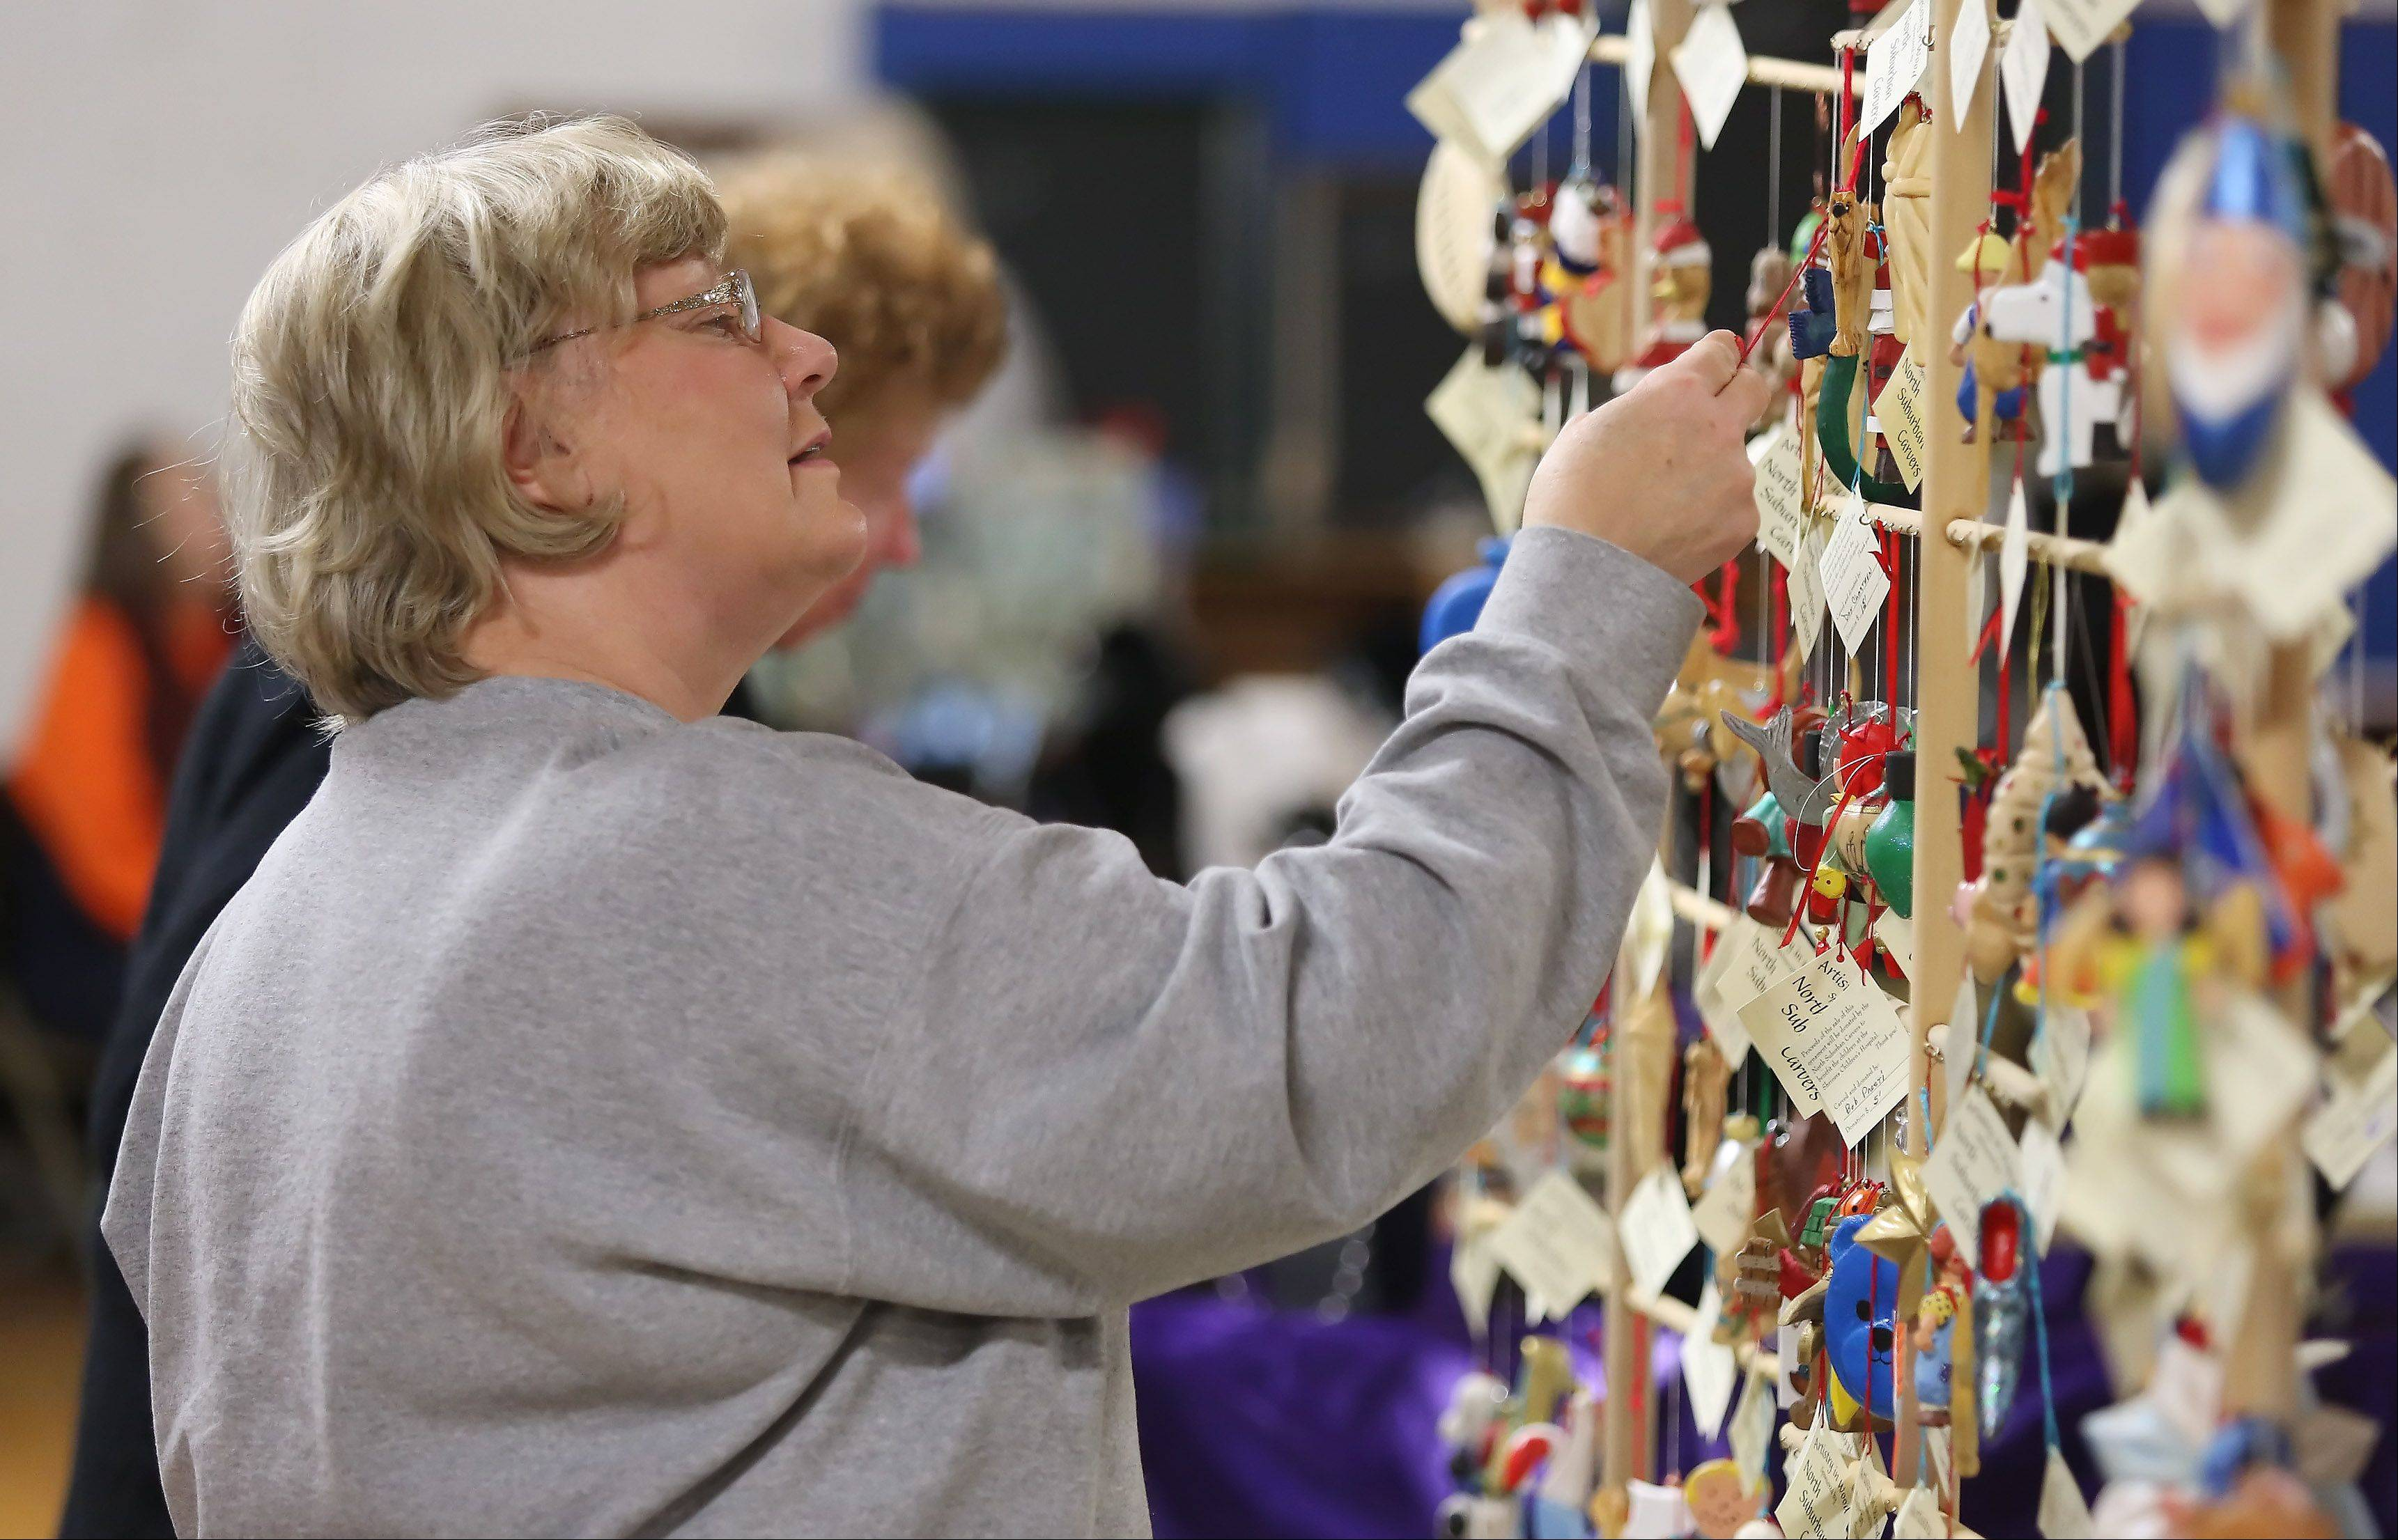 Libertyville resident Sylvia LeJeune looks at ornaments made by North Suburban Carvers during Island Lake's 27th annual Holiday Craft Fair Sunday at the Island Lake Village Hall. The fair featured almost 45 vendors offering crafts, jewelry, gifts, clothing and more. On Sunday, Santa Claus met with children and adults alike to spread holiday cheer.